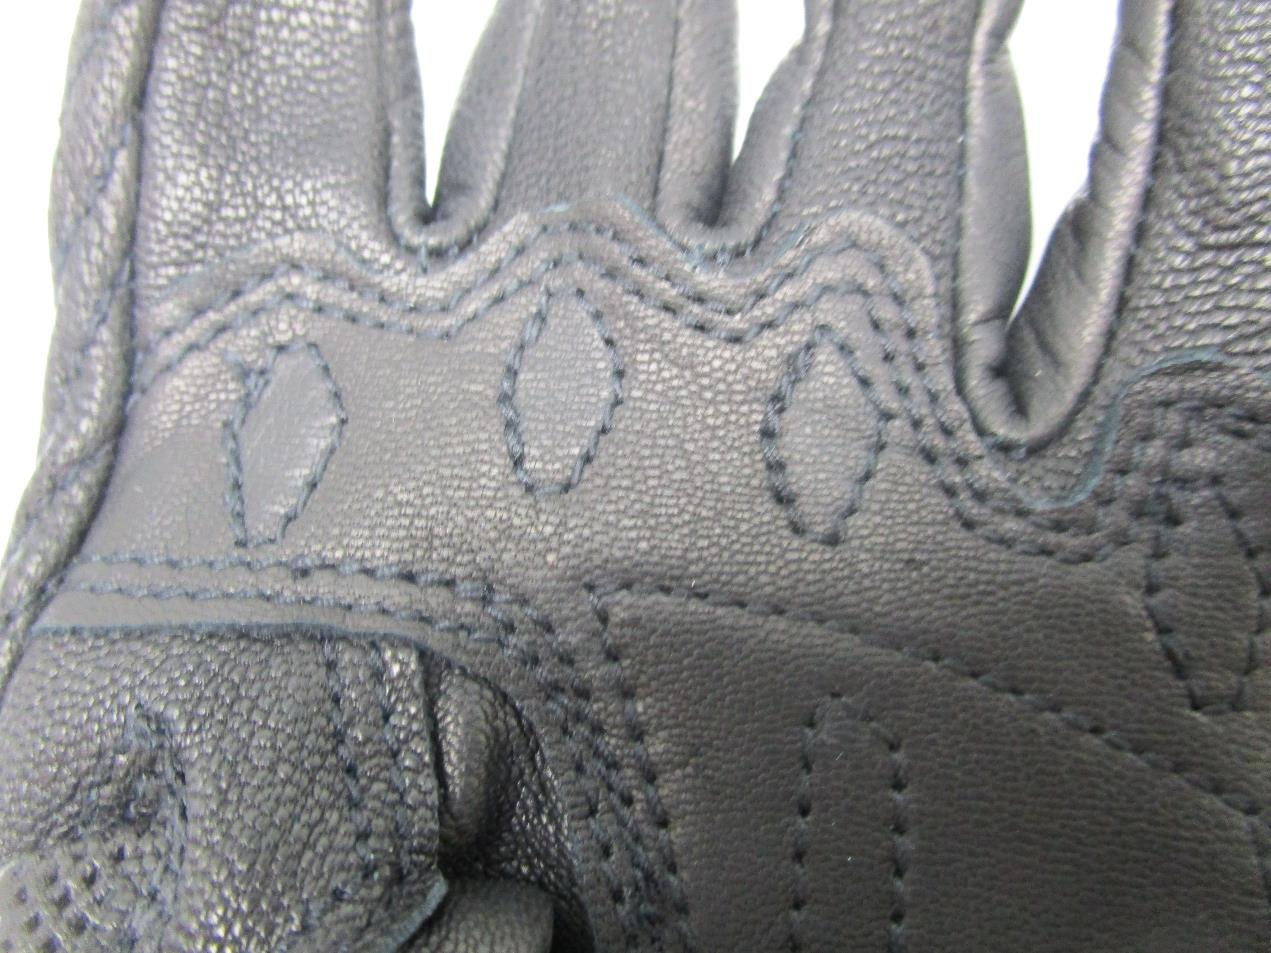 Icon justice leather motorcycle gloves - Condition Display Model And In Excellent Condition Has Some Very Fine Scratches On The Knuckles